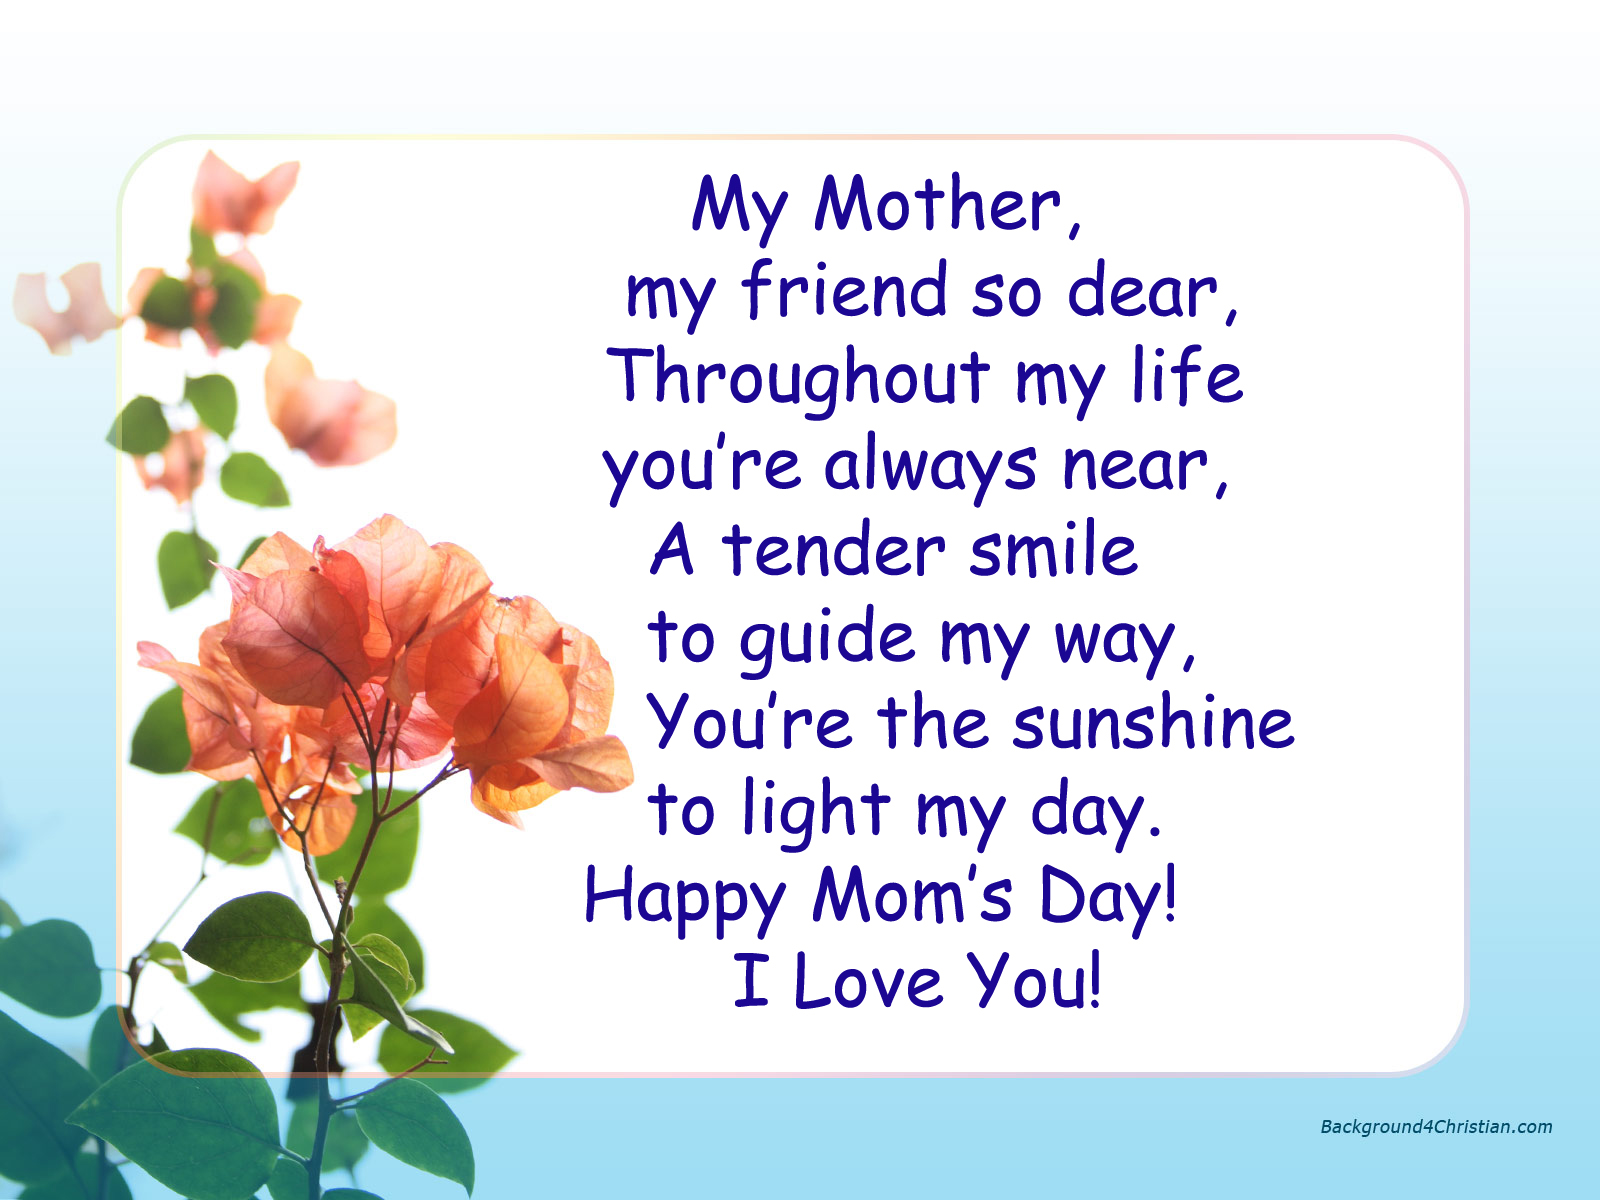 Mother's Day Poems and Quotes